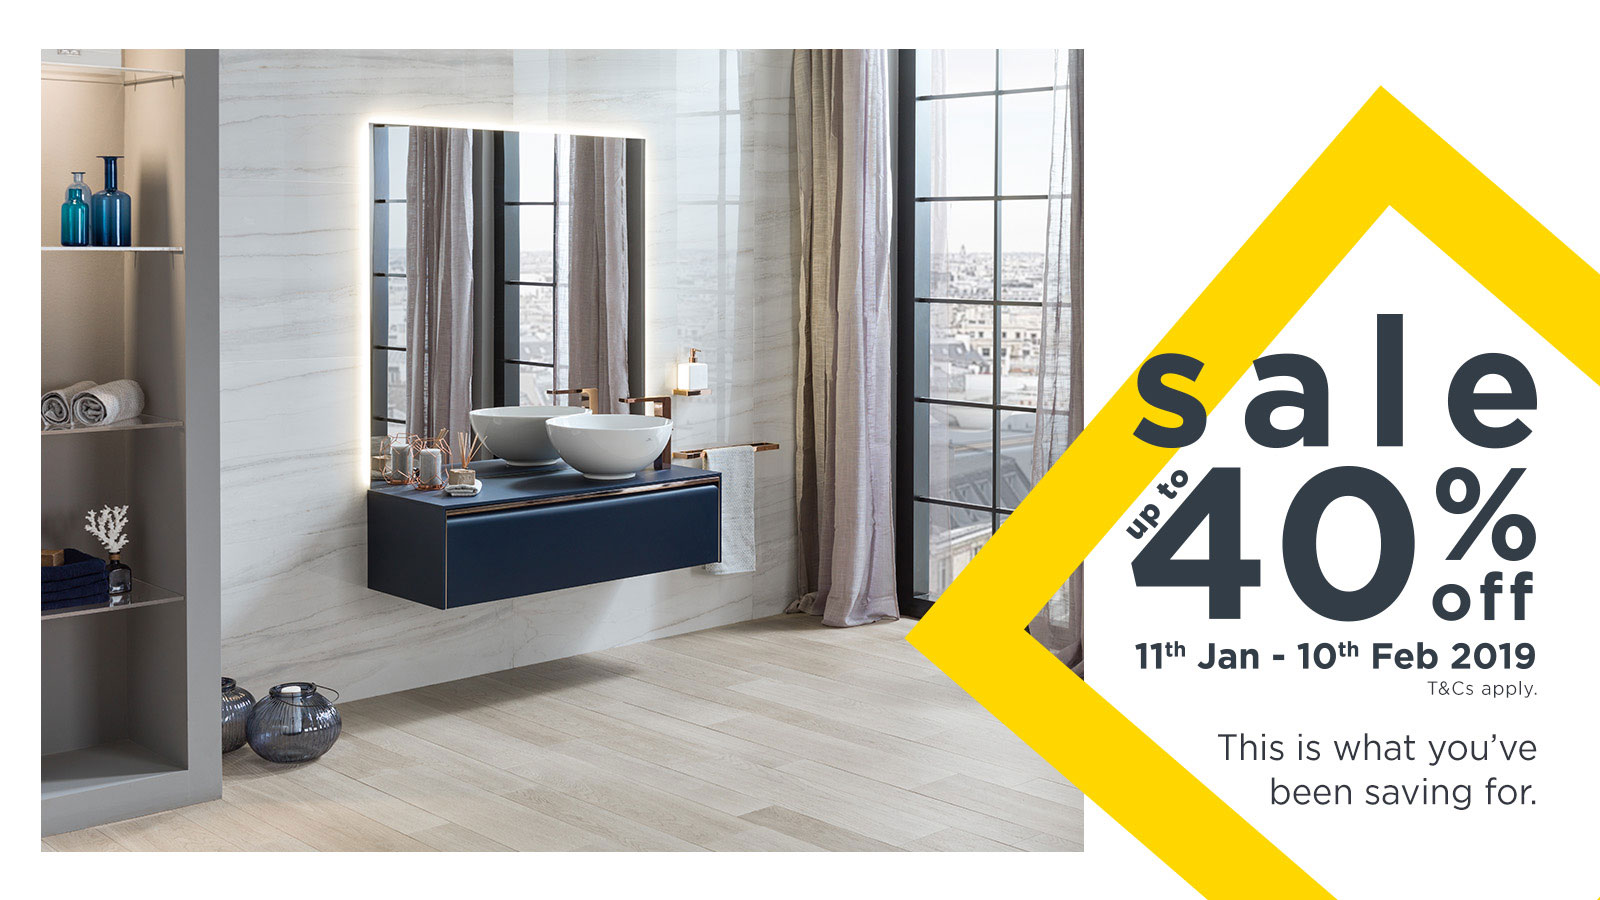 SALE up to 40% off: 11th January to 10th February